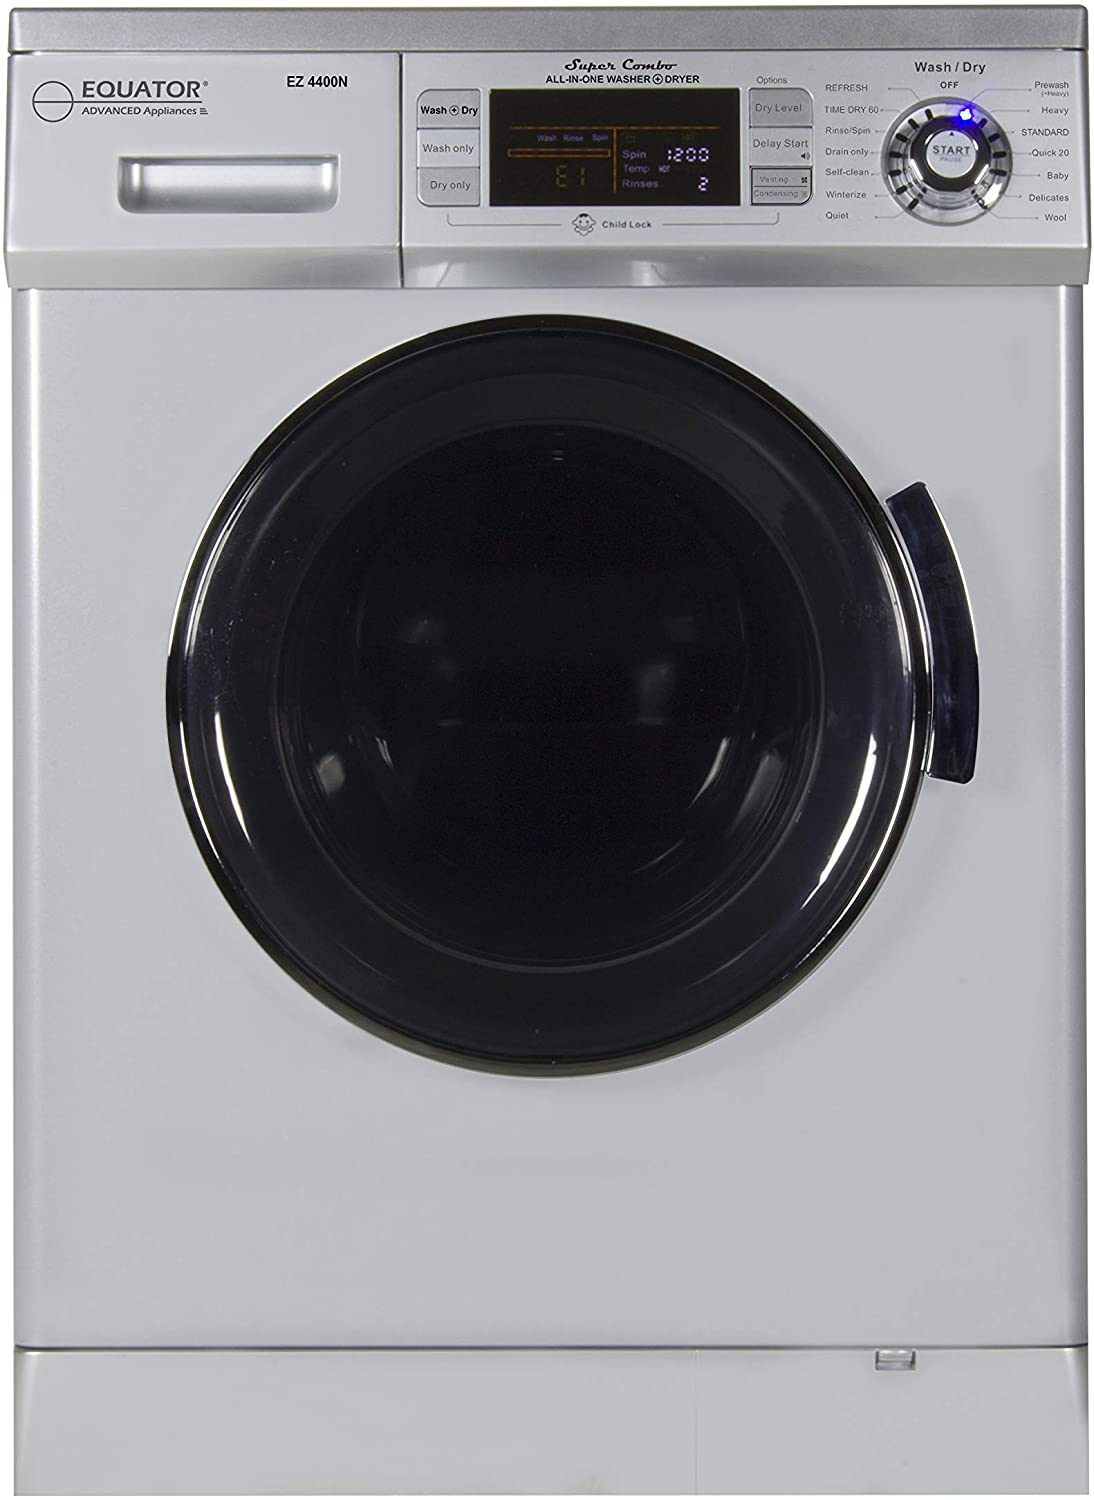 "Equator 2019 24"" Combo Washer Dryer Silver Winterize+Quiet"